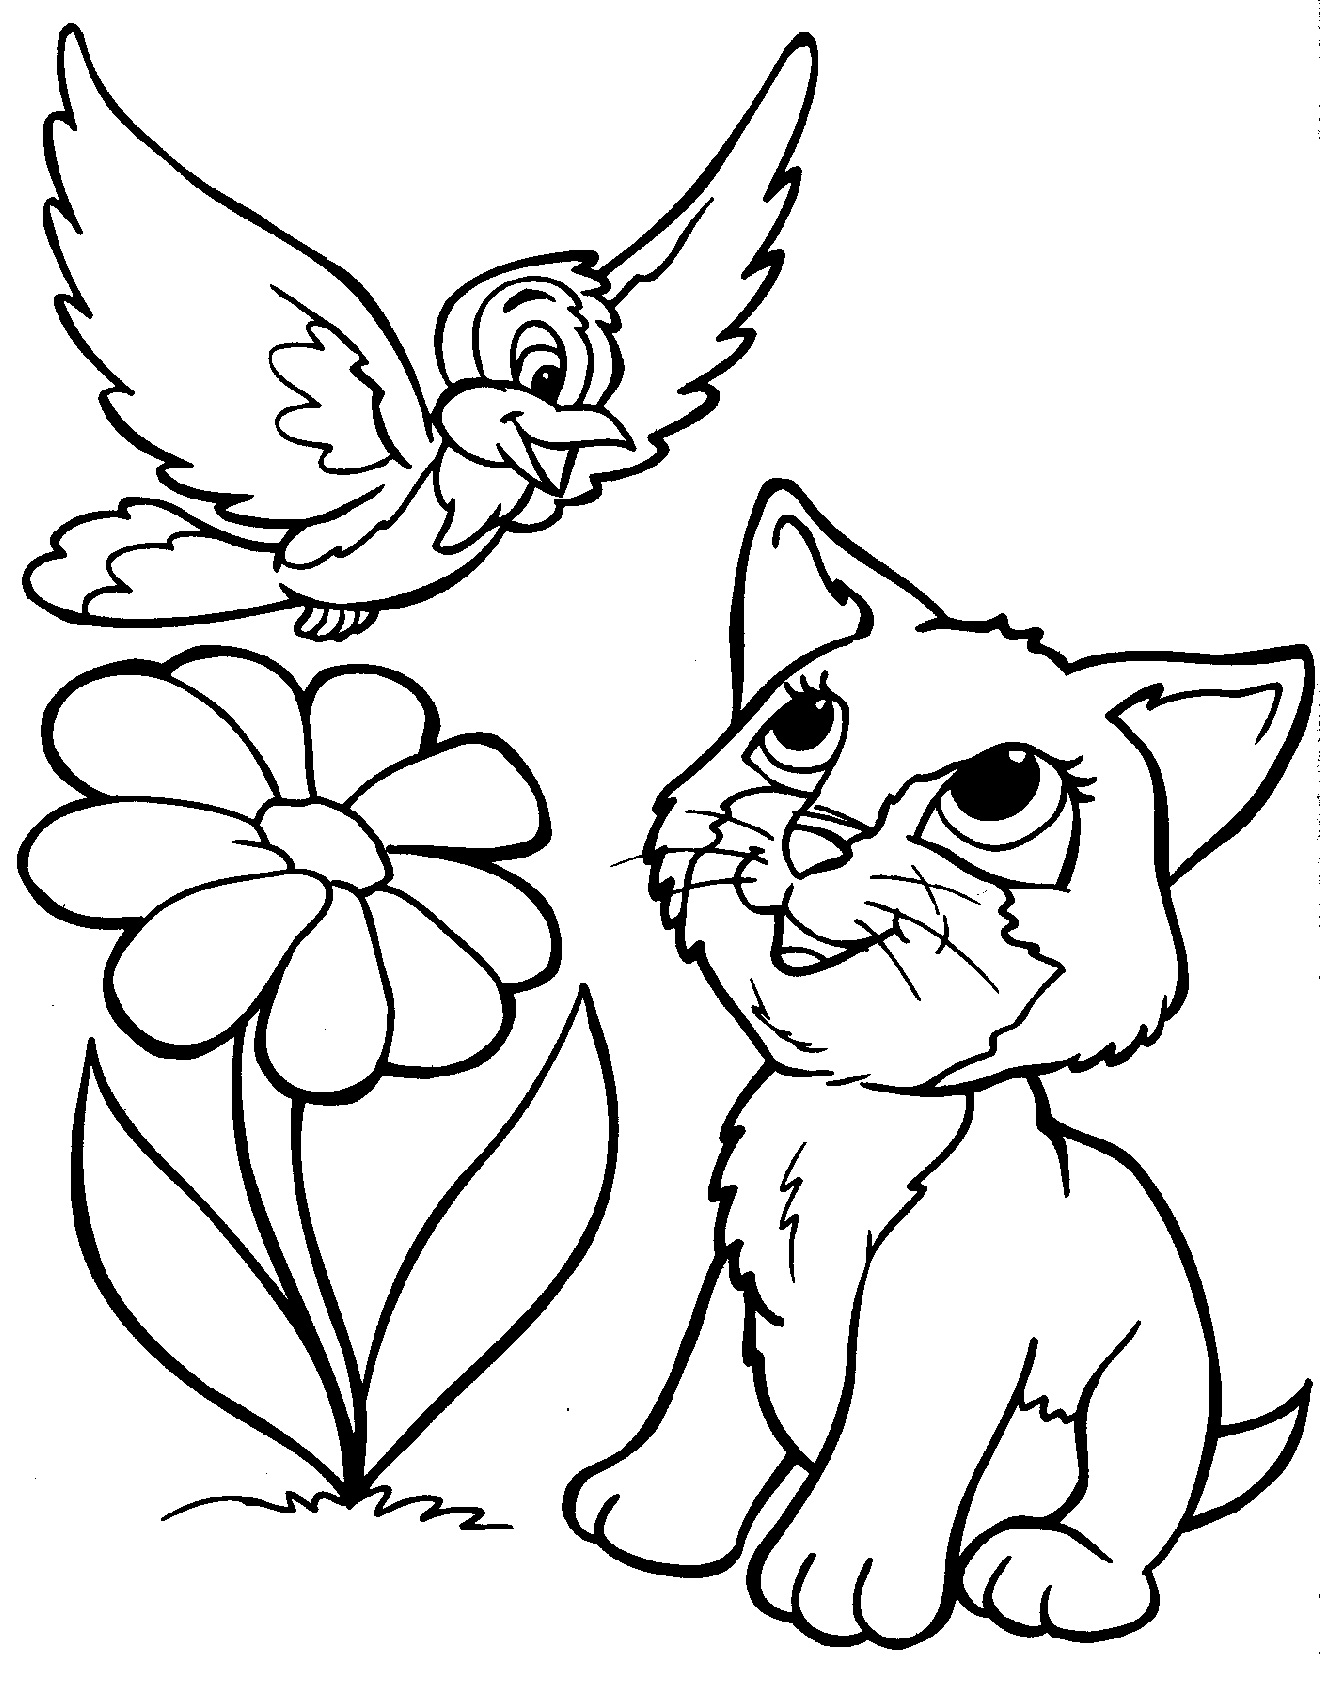 Amazoncom Creative Haven Creative Kittens Coloring Book